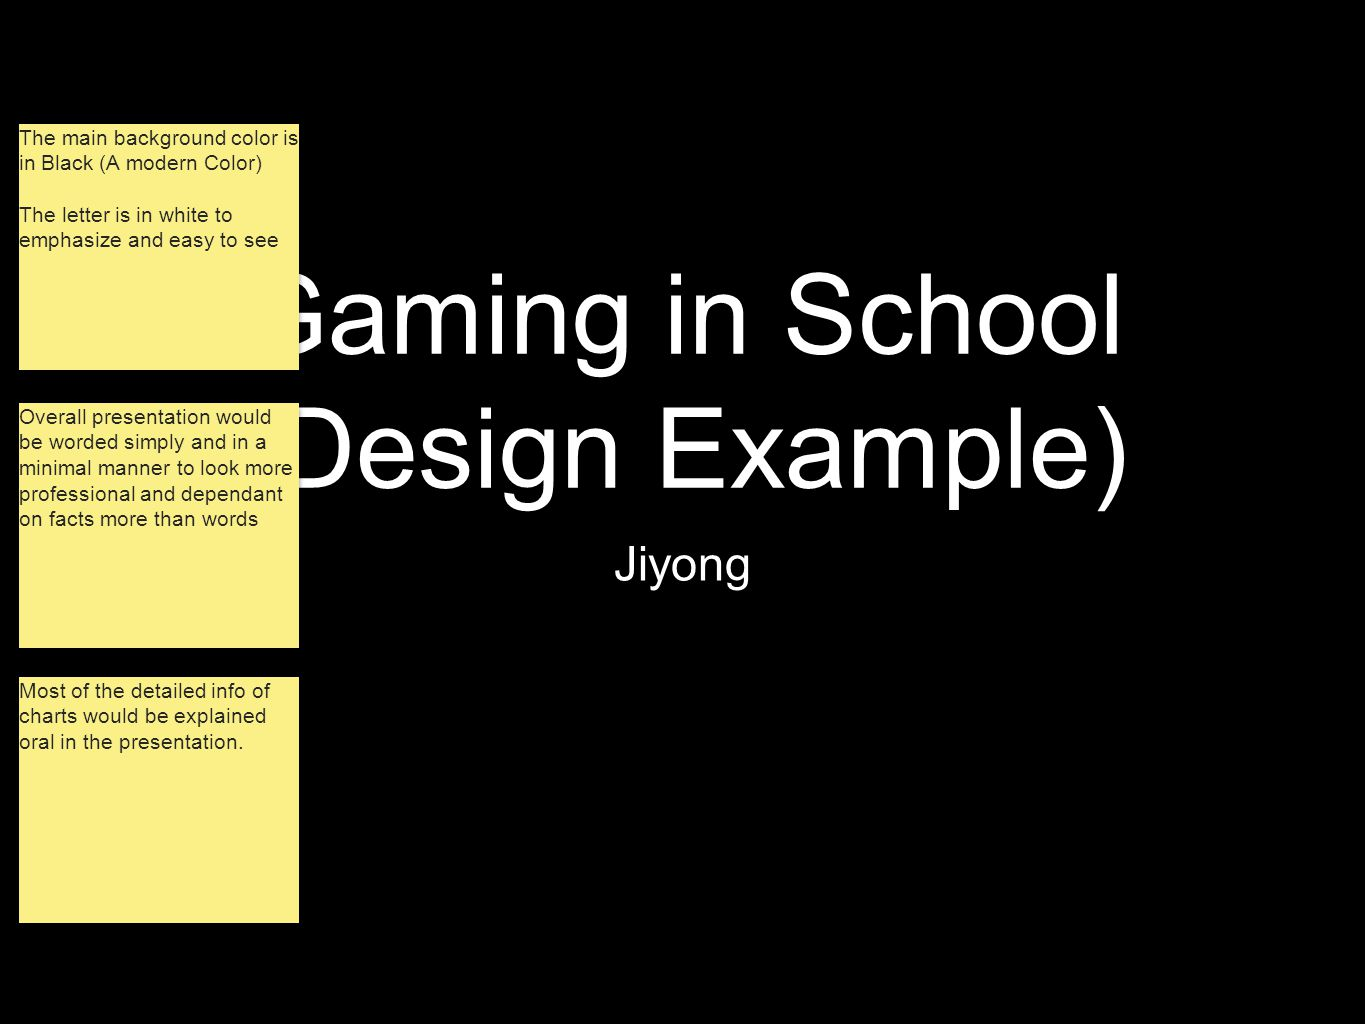 Gaming in School (Design Example) Jiyong The main background color is in Black (A modern Color) The letter is in white to emphasize and easy to see Th